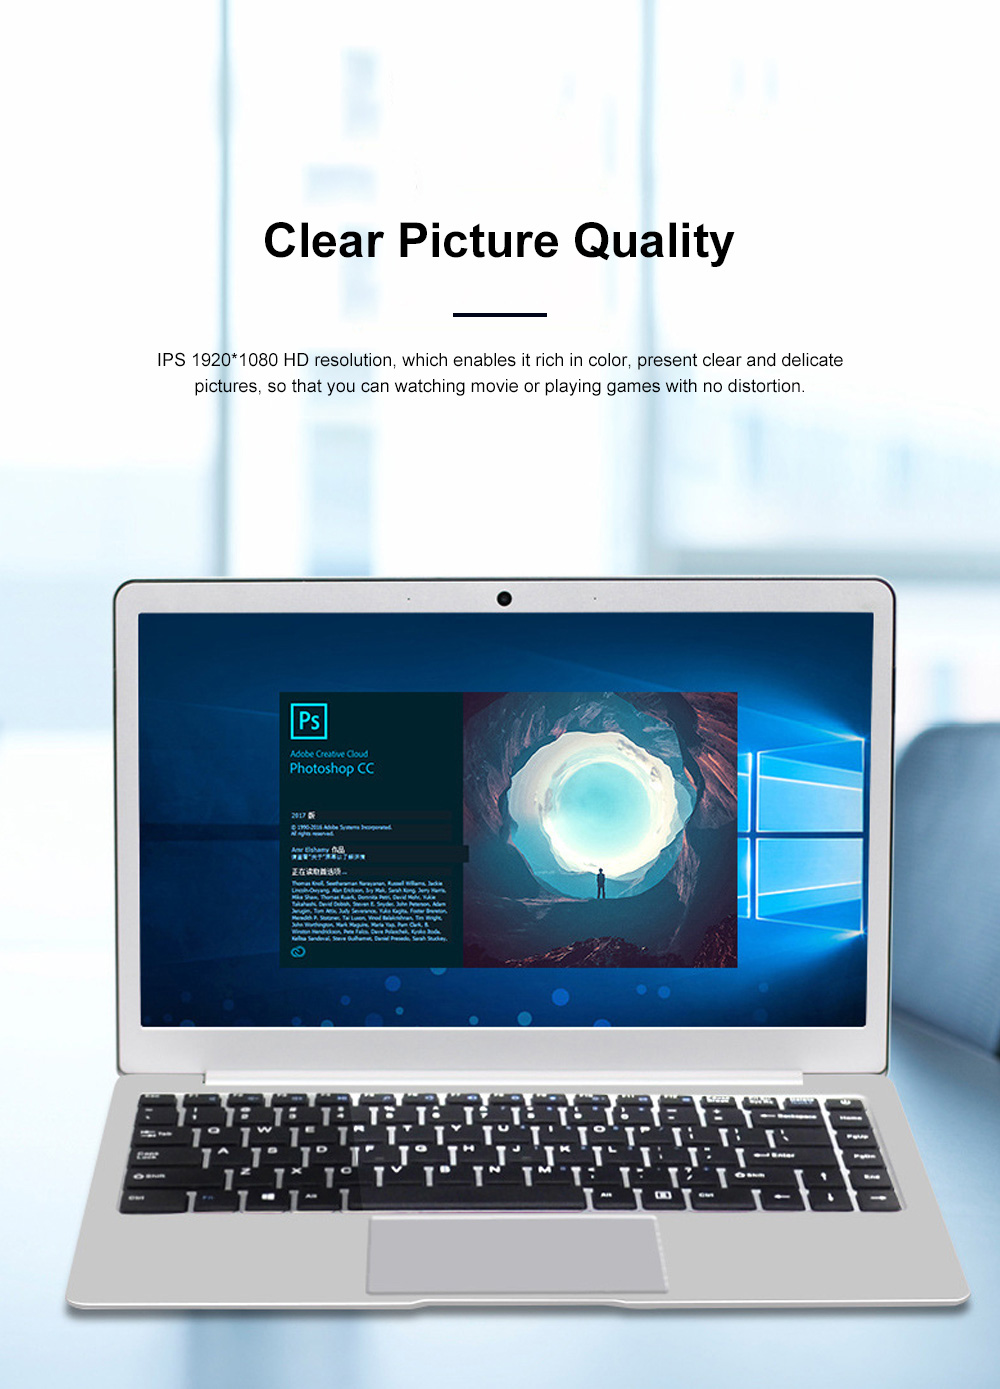 I4 Inch N3450 Laptop Intel Quad-Core ProBook with 1920*1080 HD Resolution Ultra Slim Notebook with Wide View Angle 5